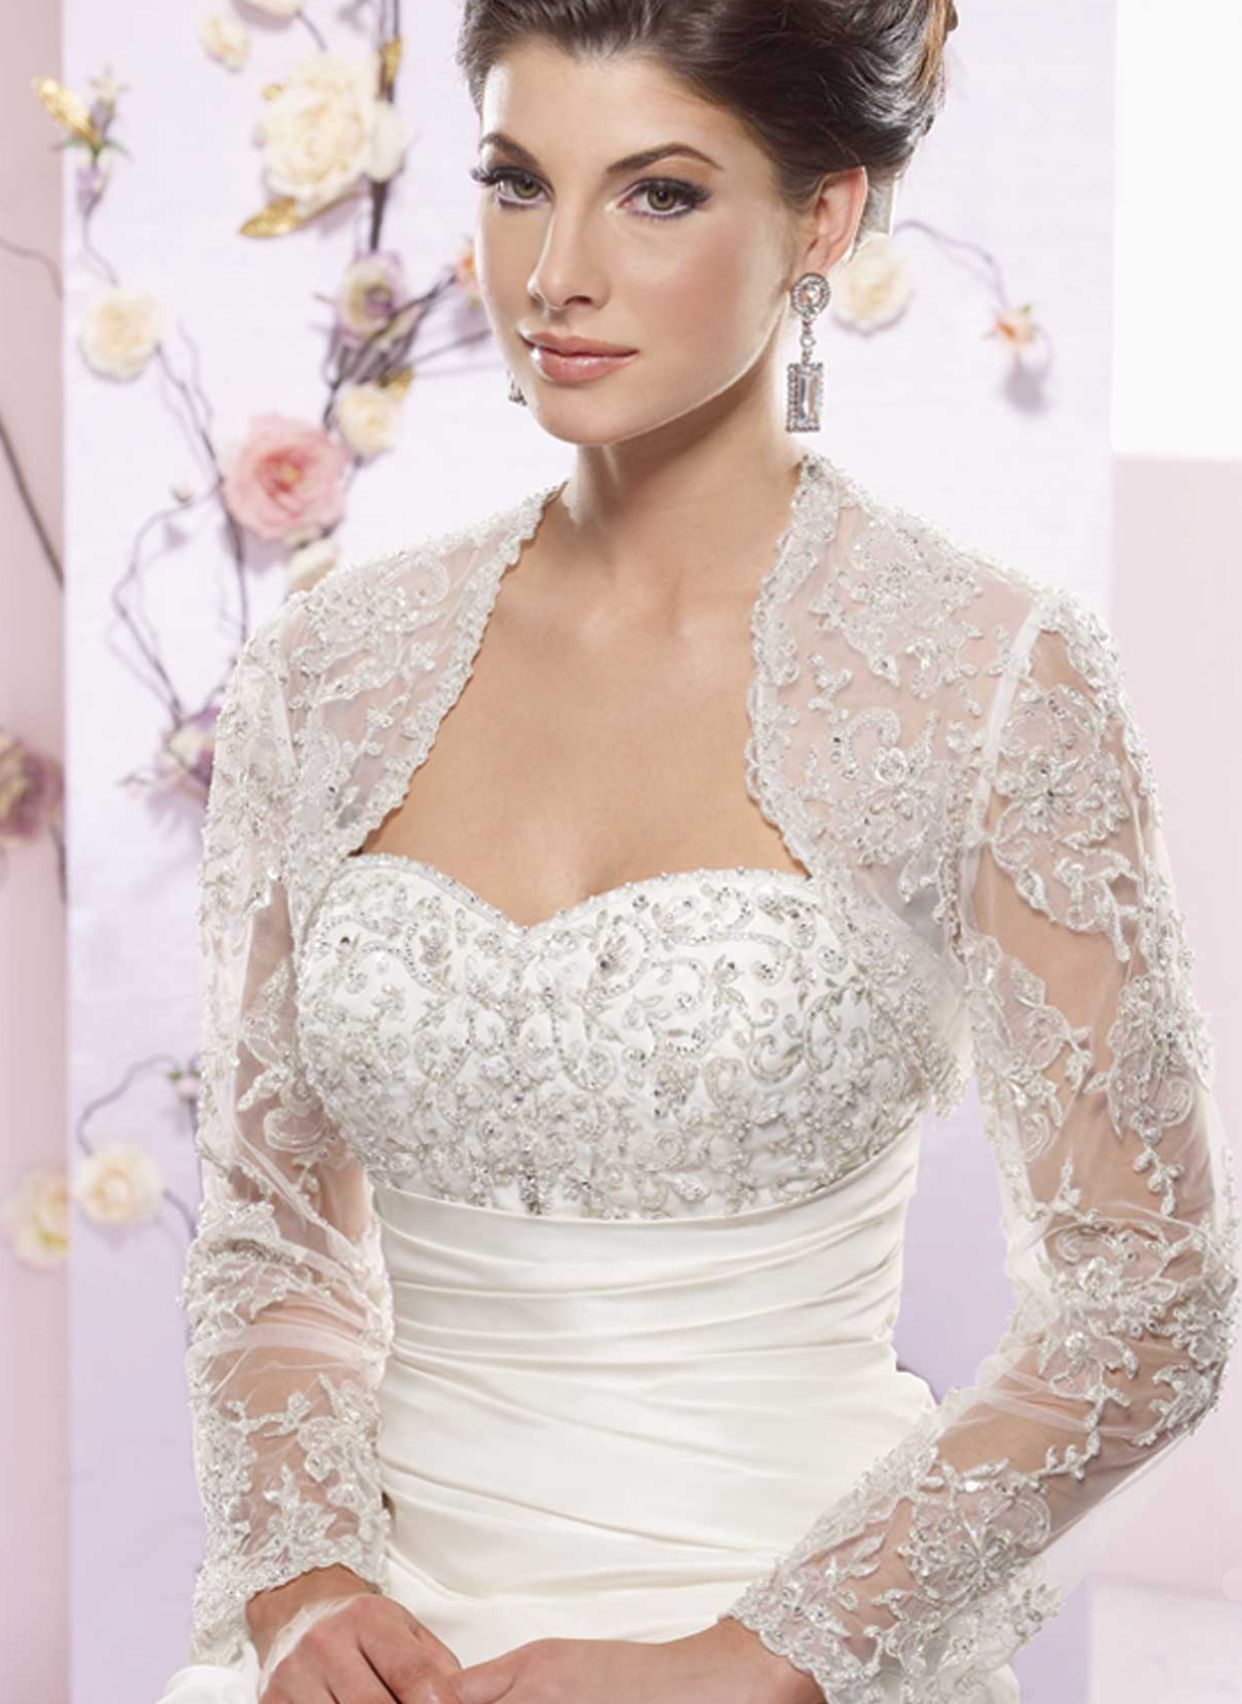 Wedding Dresses Bolero Jacket - Ocodea.com